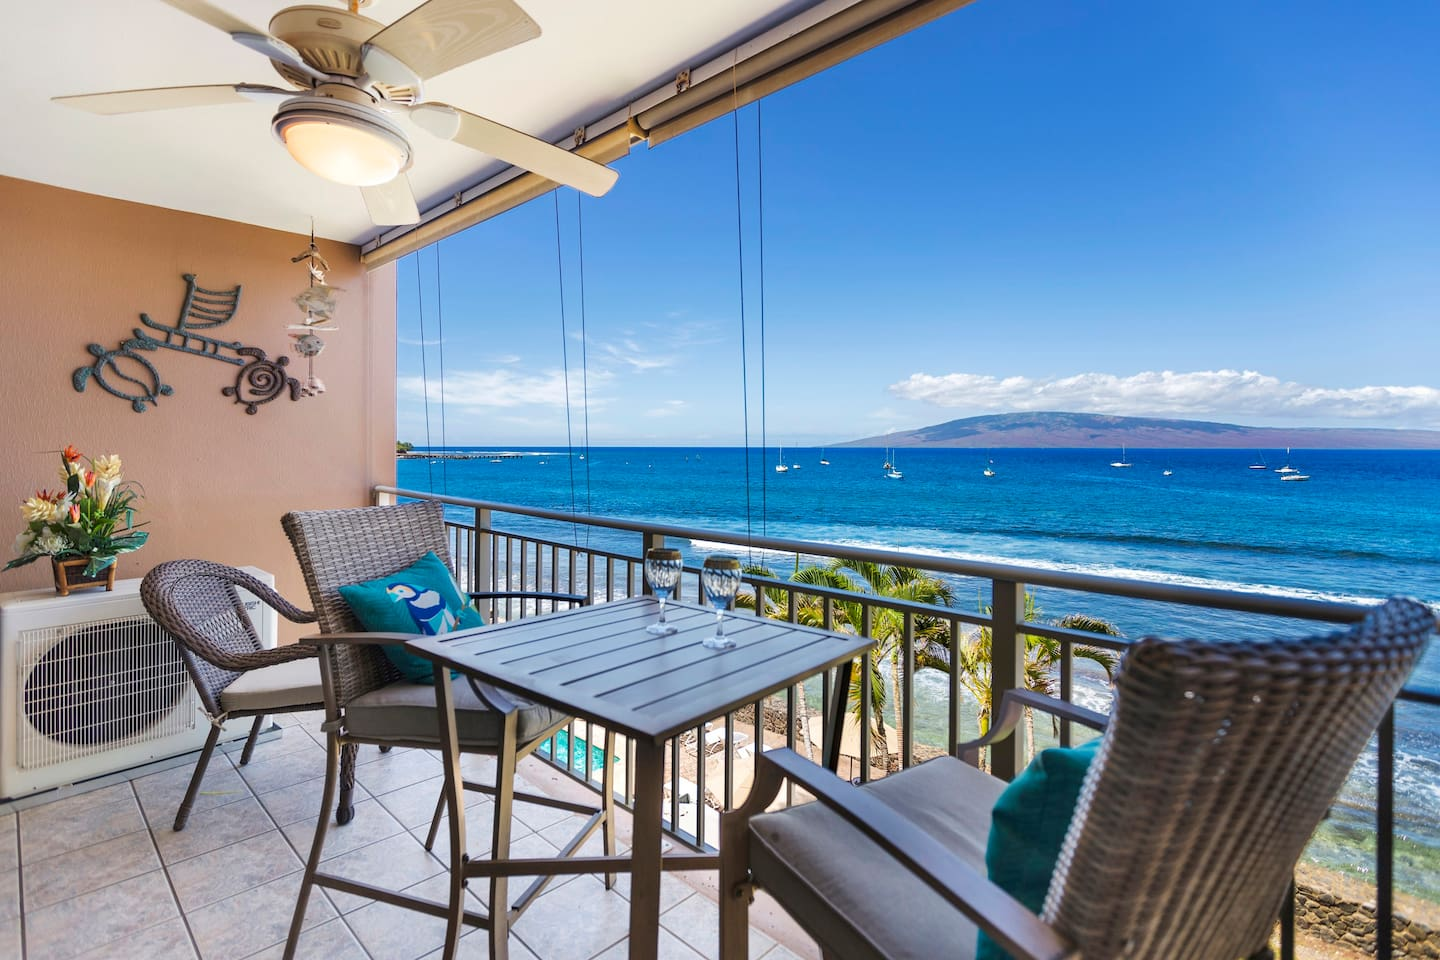 Stunning panaromic oceanview on a perfect 4th floor condo, walk to beach, grocery shopping, restaurants and the historic town of Lahaina